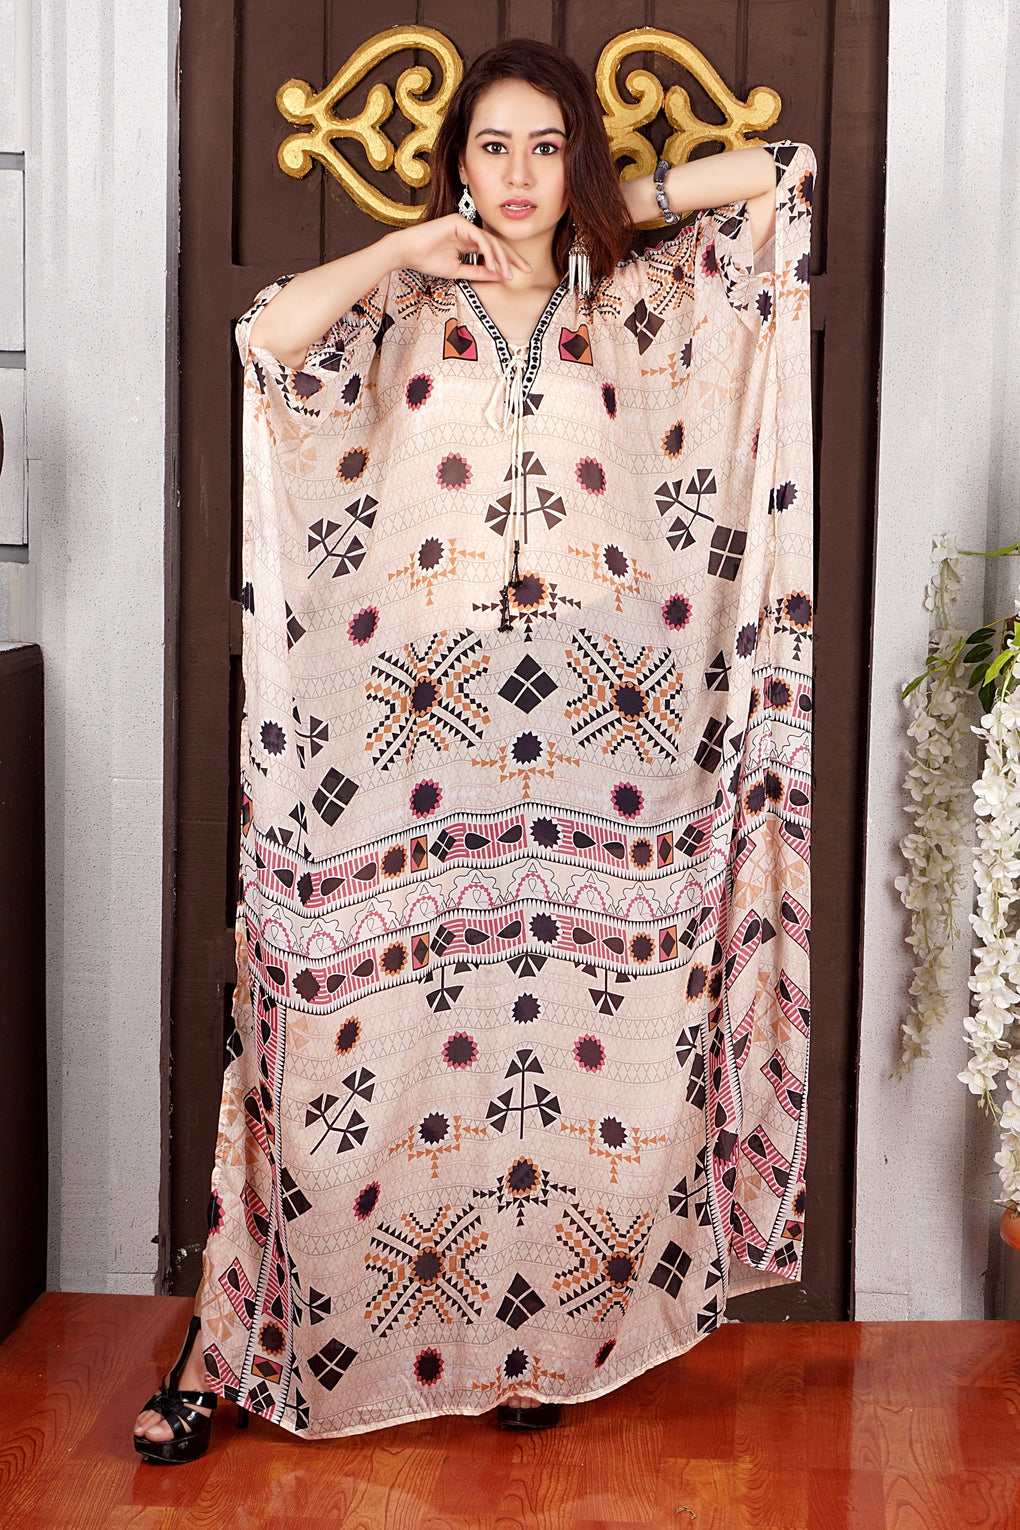 Lace Up Centre front digitally printed Ethnic Geometric Print over Pure Silk Kaftan of full length and styled side splits Luxe beach kaftan - Silk kaftan